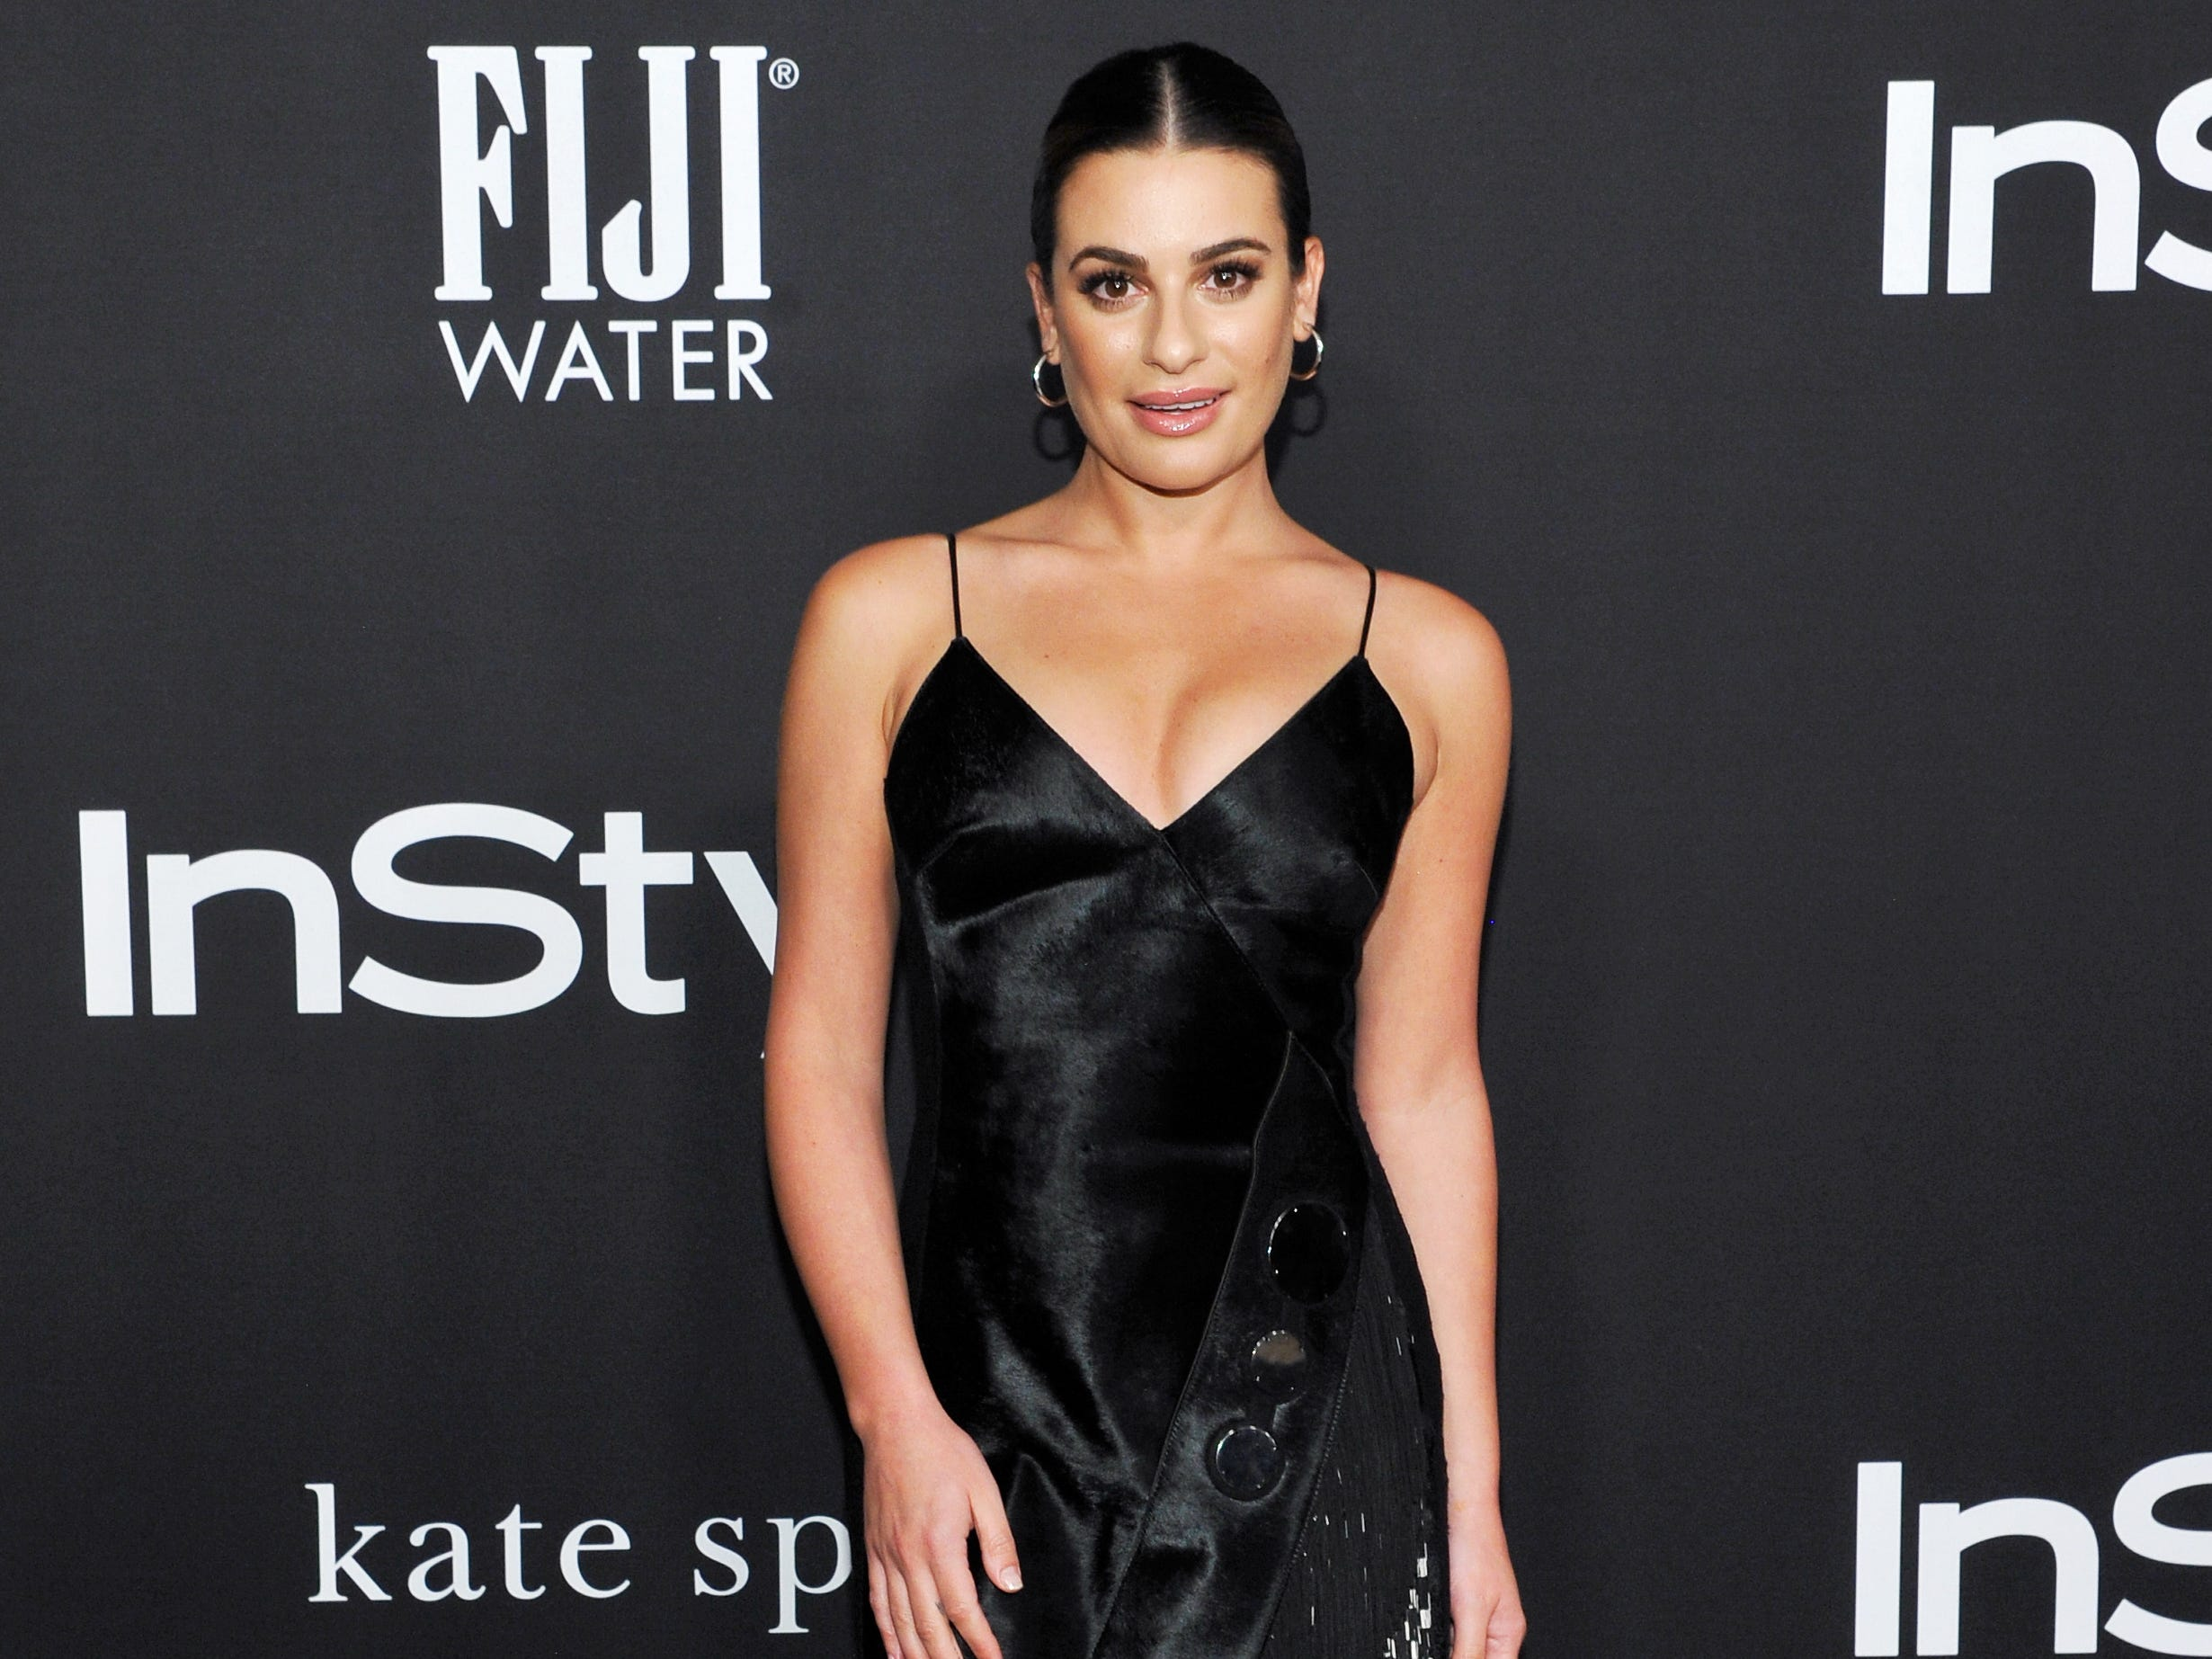 LOS ANGELES, CA - OCTOBER 22:  Lea Michele attends the 2018 InStyle Awards with Fiji Water on October 22, 2018 in Los Angeles, California.  (Photo by John Sciulli/Getty Images for FIJI Water) ORG XMIT: 775244144 ORIG FILE ID: 1052786024